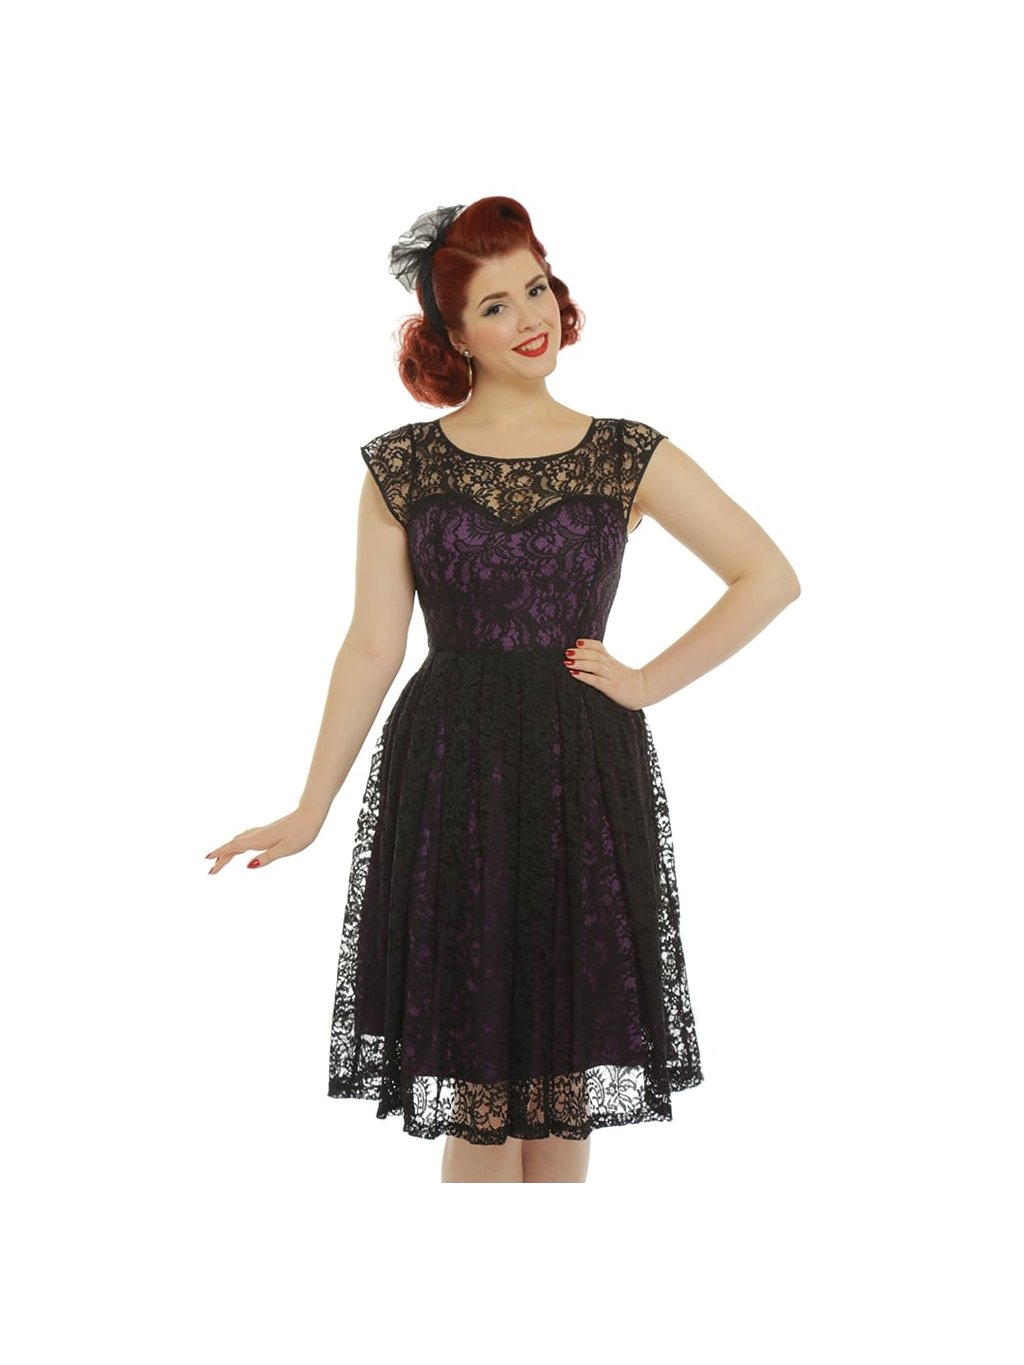 blair purple and black lace evening dress p3346 19129 zoom 51f7375e8e